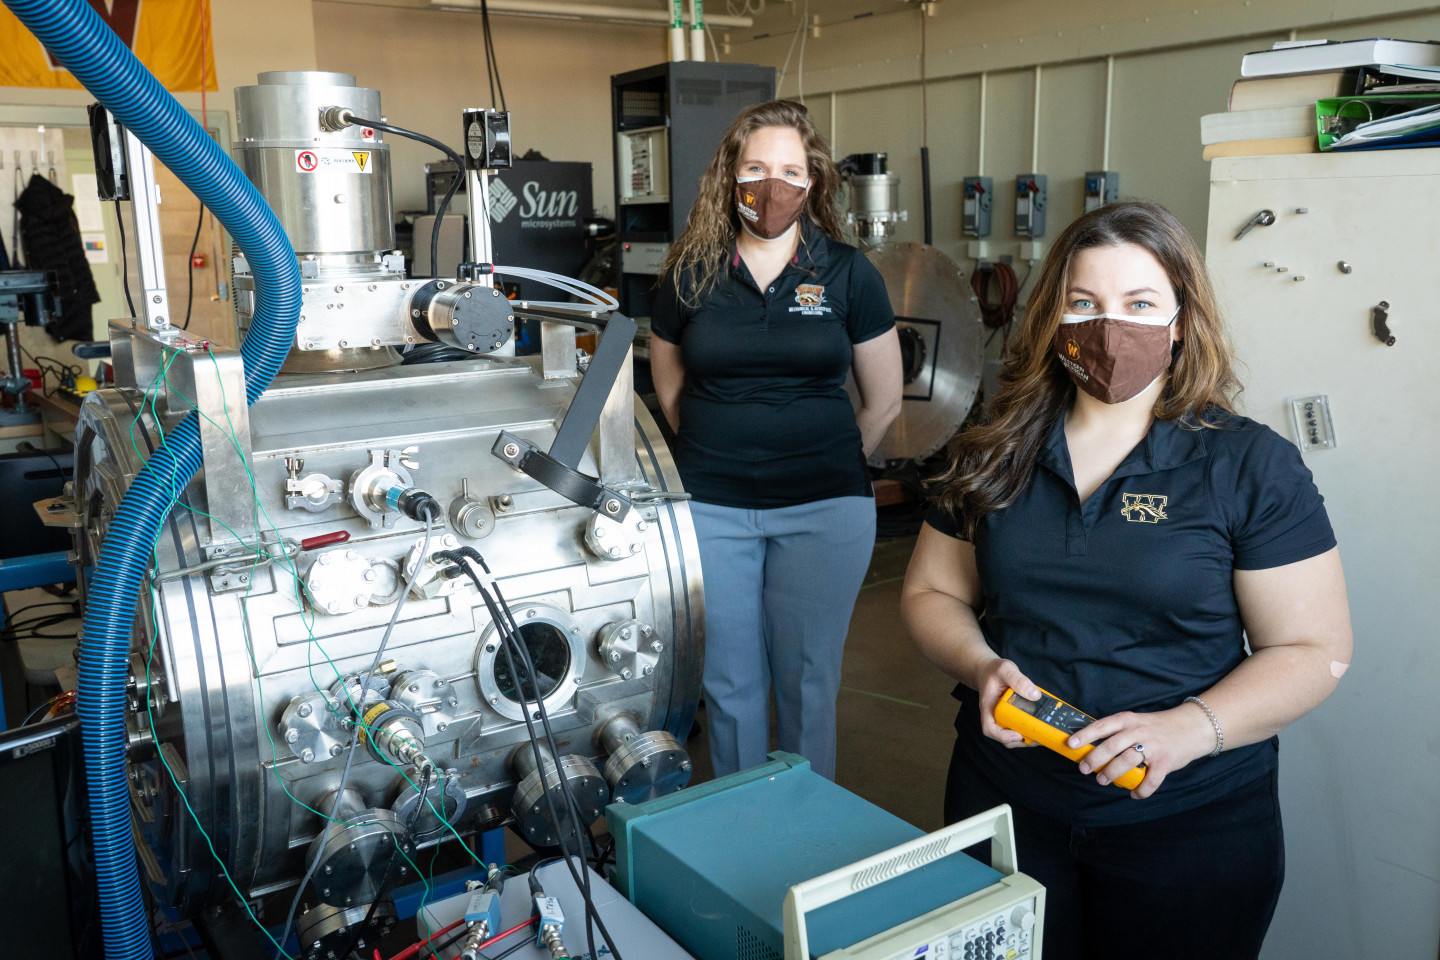 Dr. Kristina Lemmer and Margaret Mooney pose for a picture in an engineering laboratory.